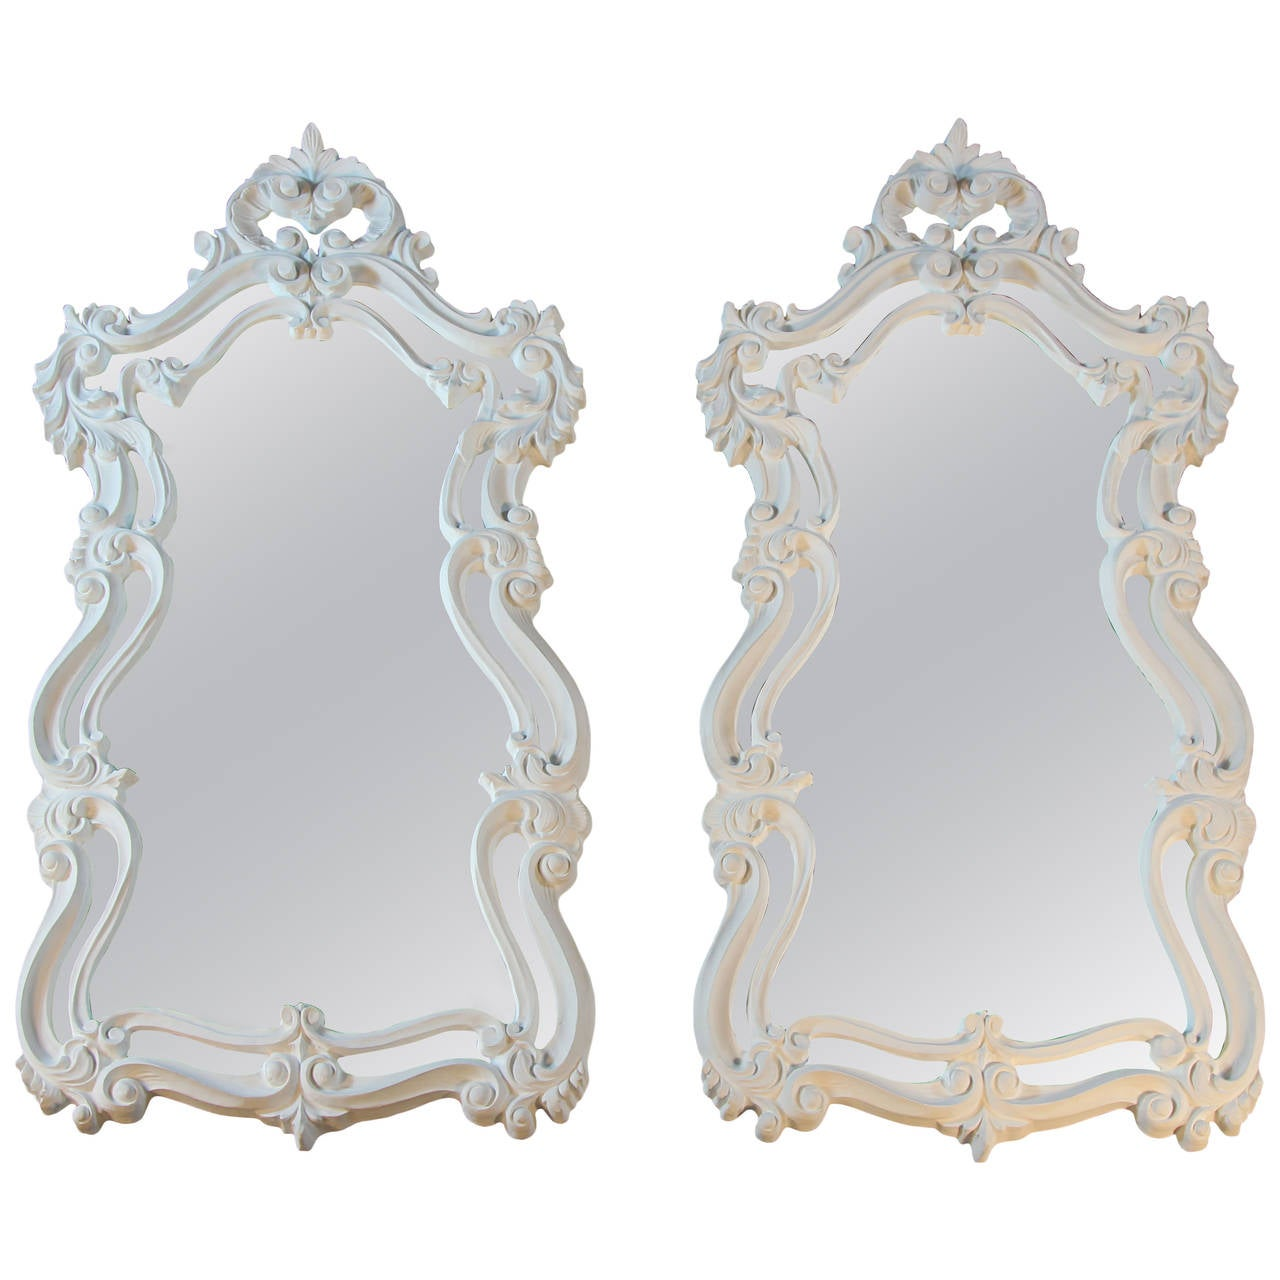 Pair of rococo style mirrors in white at 1stdibs for White baroque style mirror